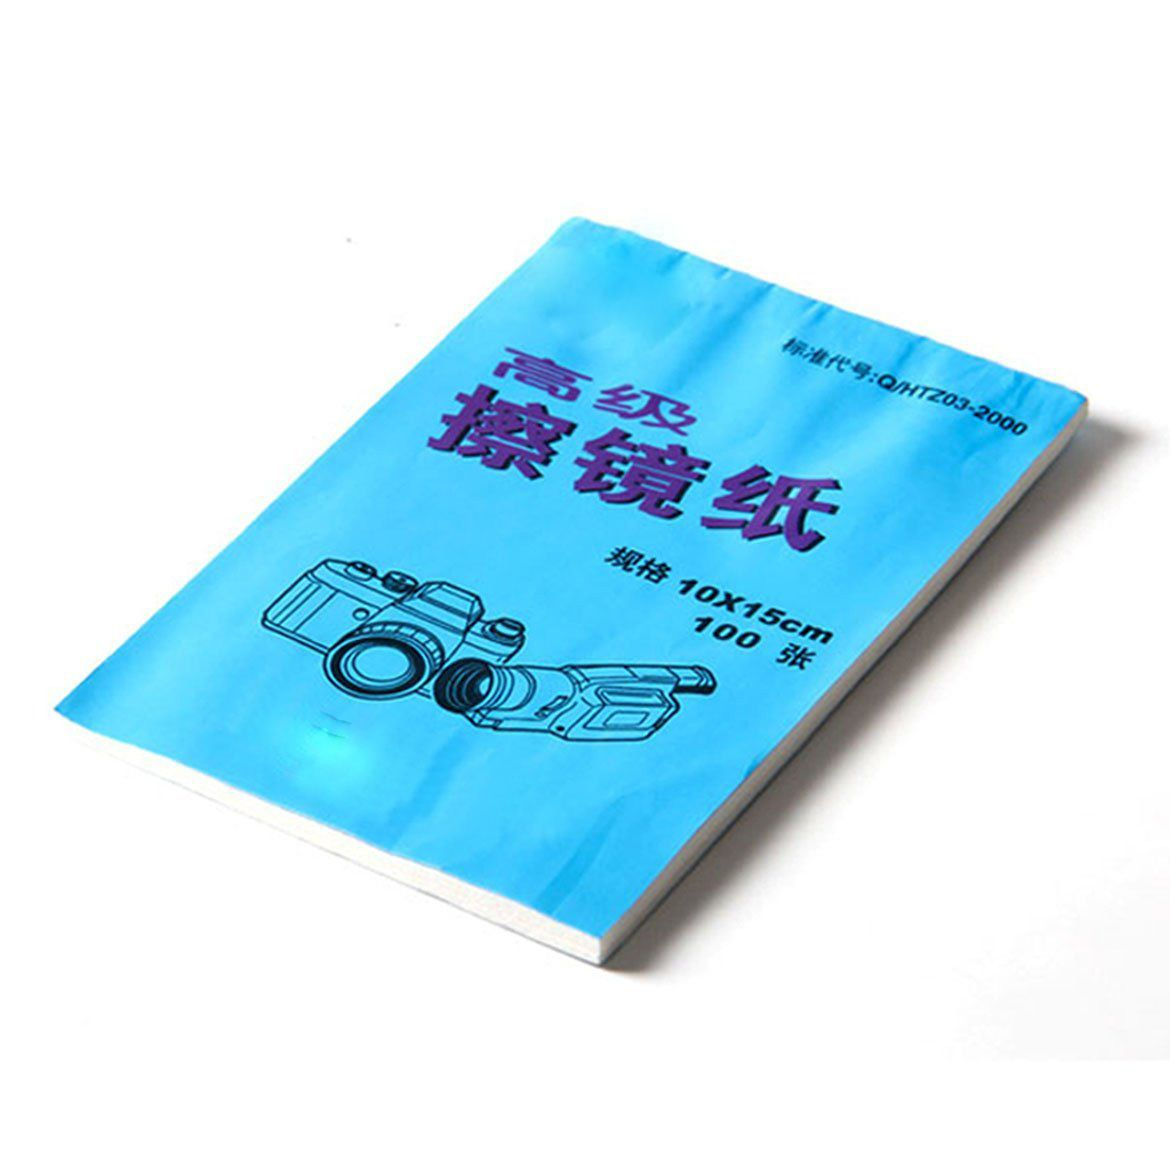 New Hot Camera Cleaning Paper Cleaner Lens Tissue 100 Sheets